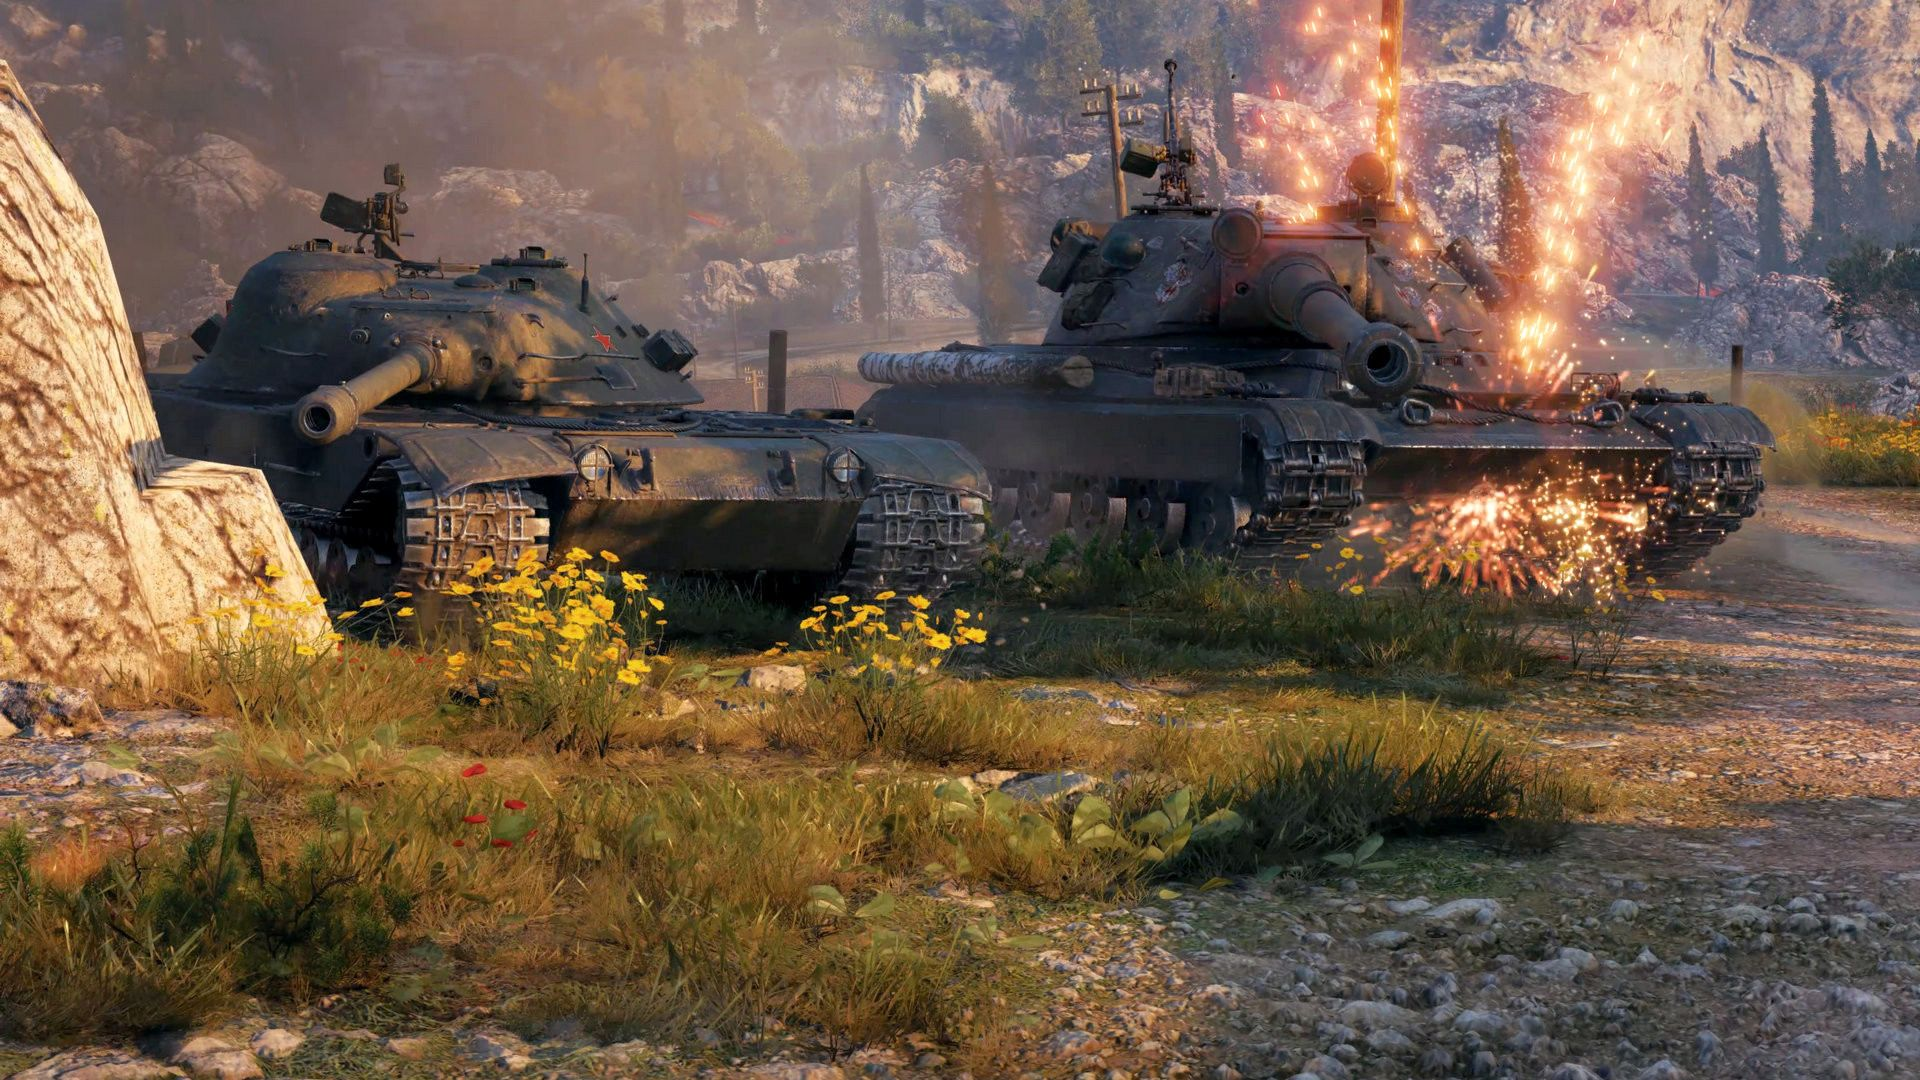 Sign up to World of Tanks to get a free premium tank and 600 gold